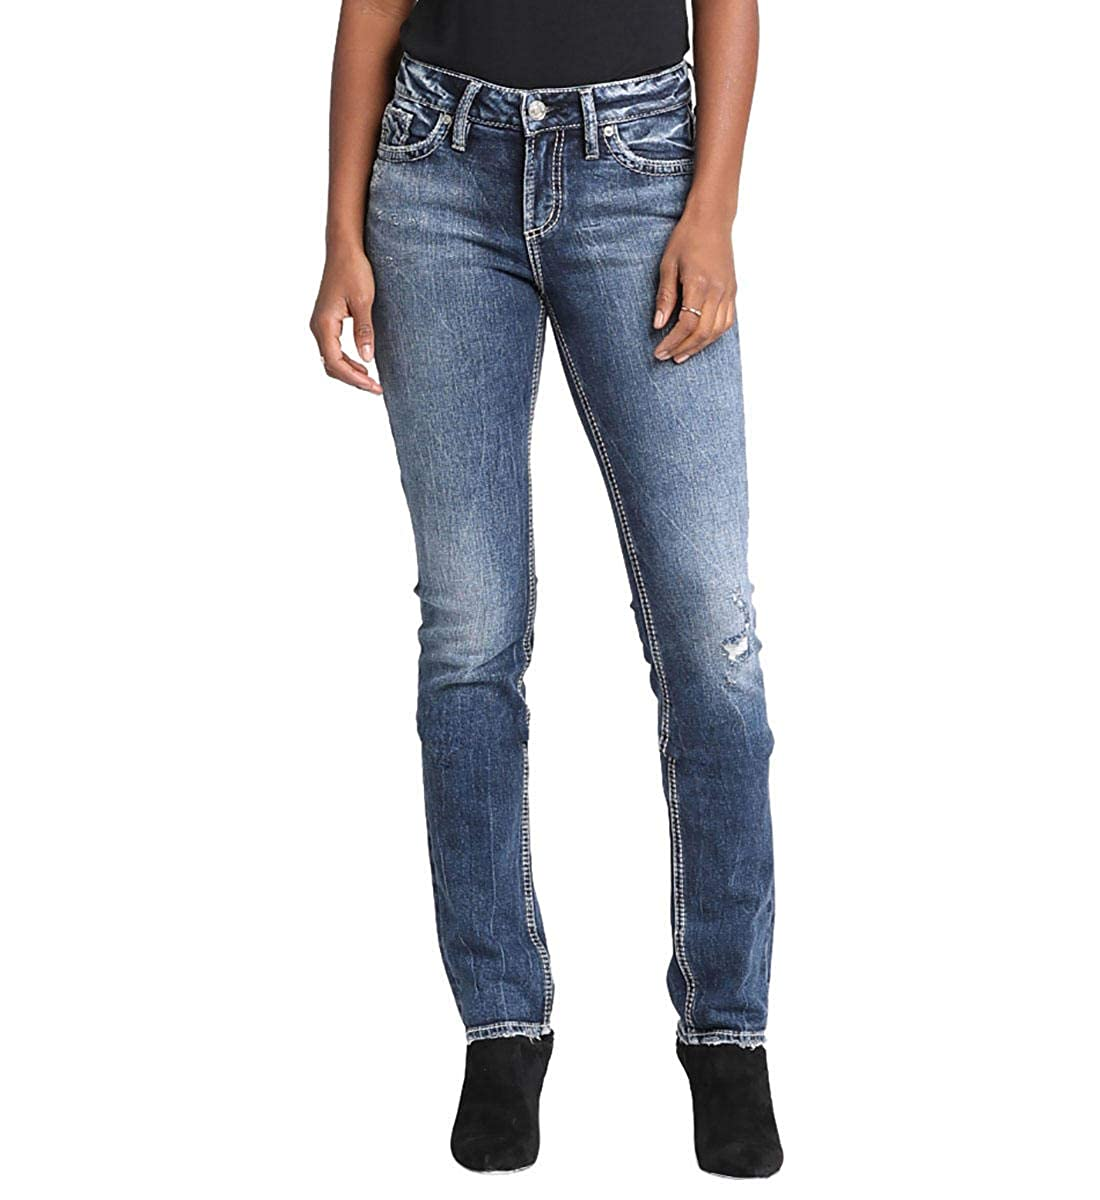 5f6674da7f Curvy relaxed straight-leg jeans with a dark indigo wash. Mid rise.  Comfortable low-stretch denim 5-pocket styling with a zip fly